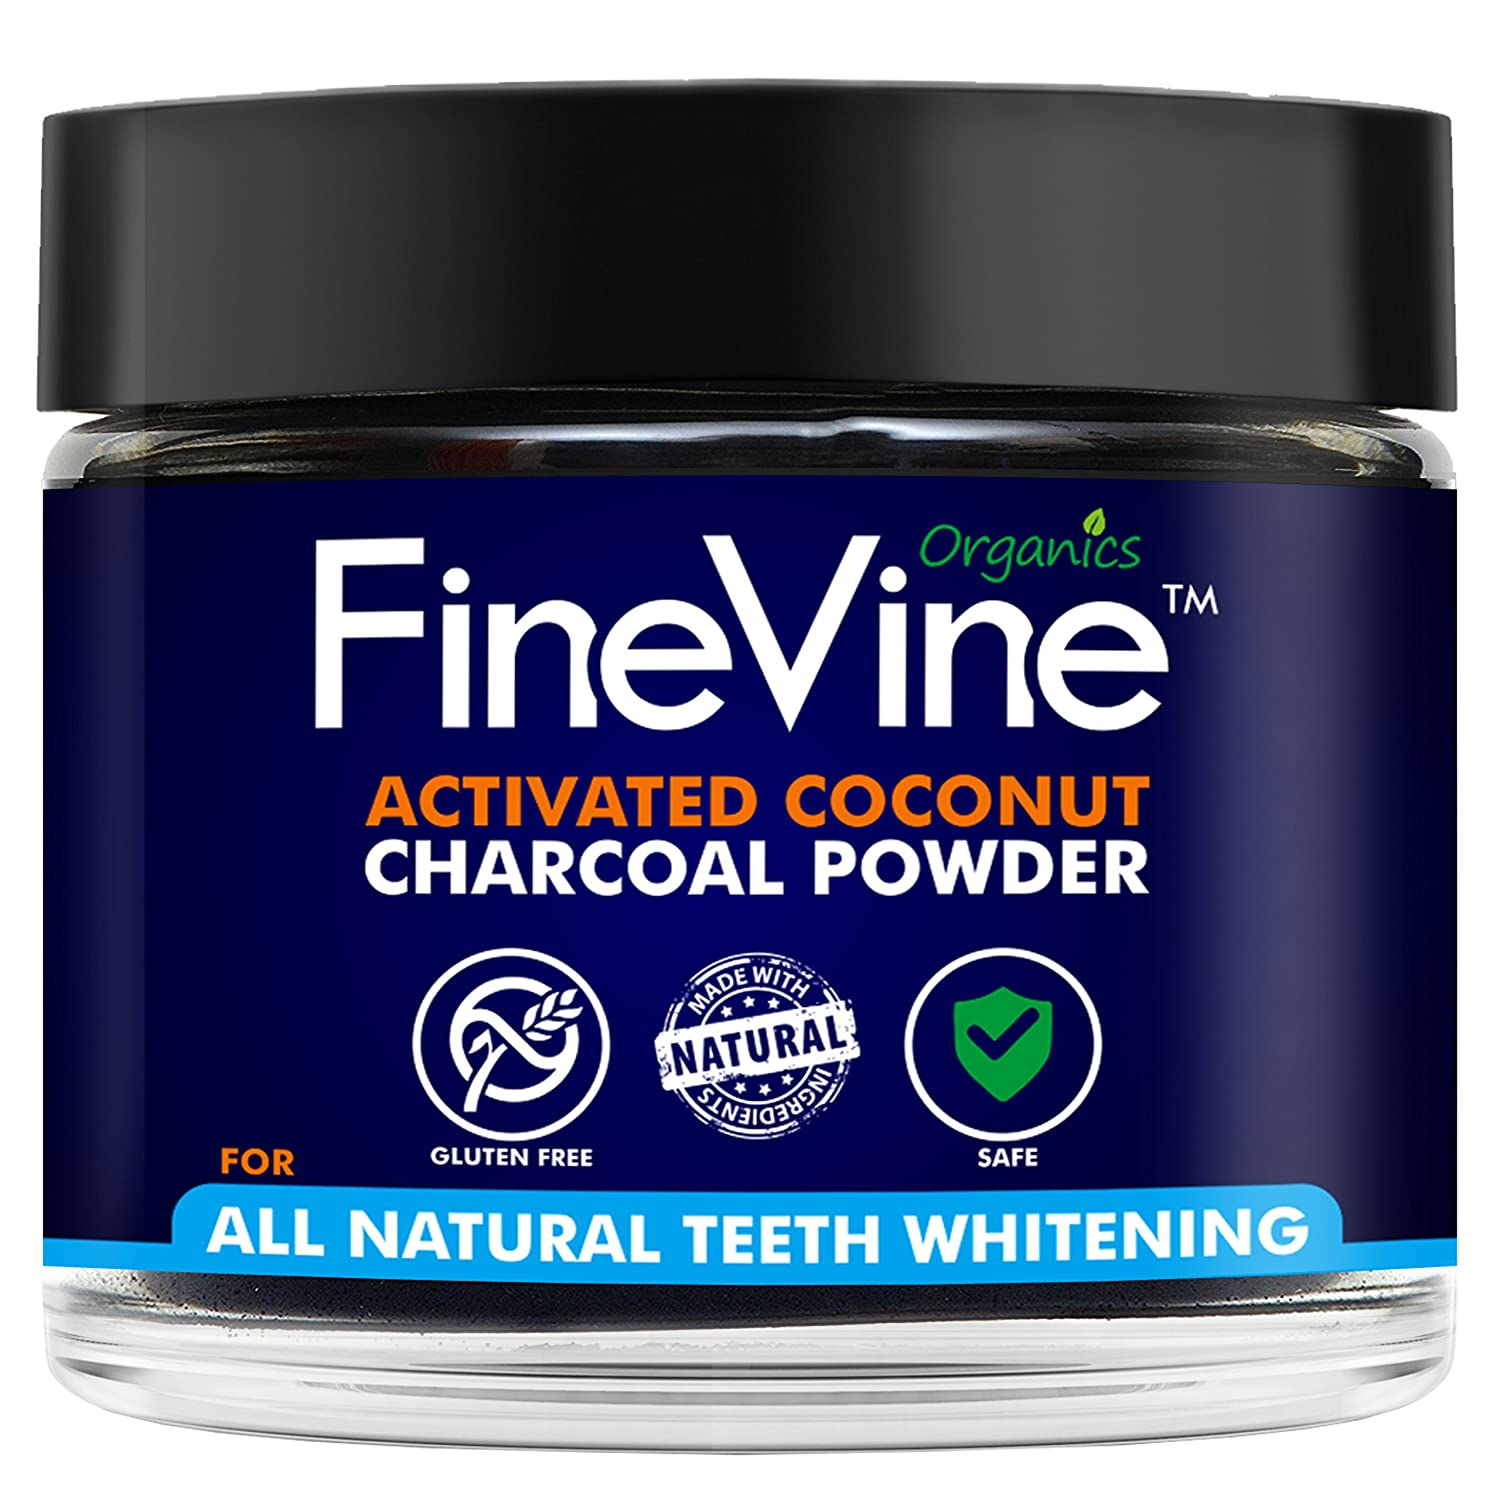 All Natural Teeth Whitening Powder - Made in USA with Coconut Activated Charcoal - Safe Effective Tooth Whitener Solution. Better than Strips, Kit, Gel & Whitening Toothpaste. FineVine Organics FV001